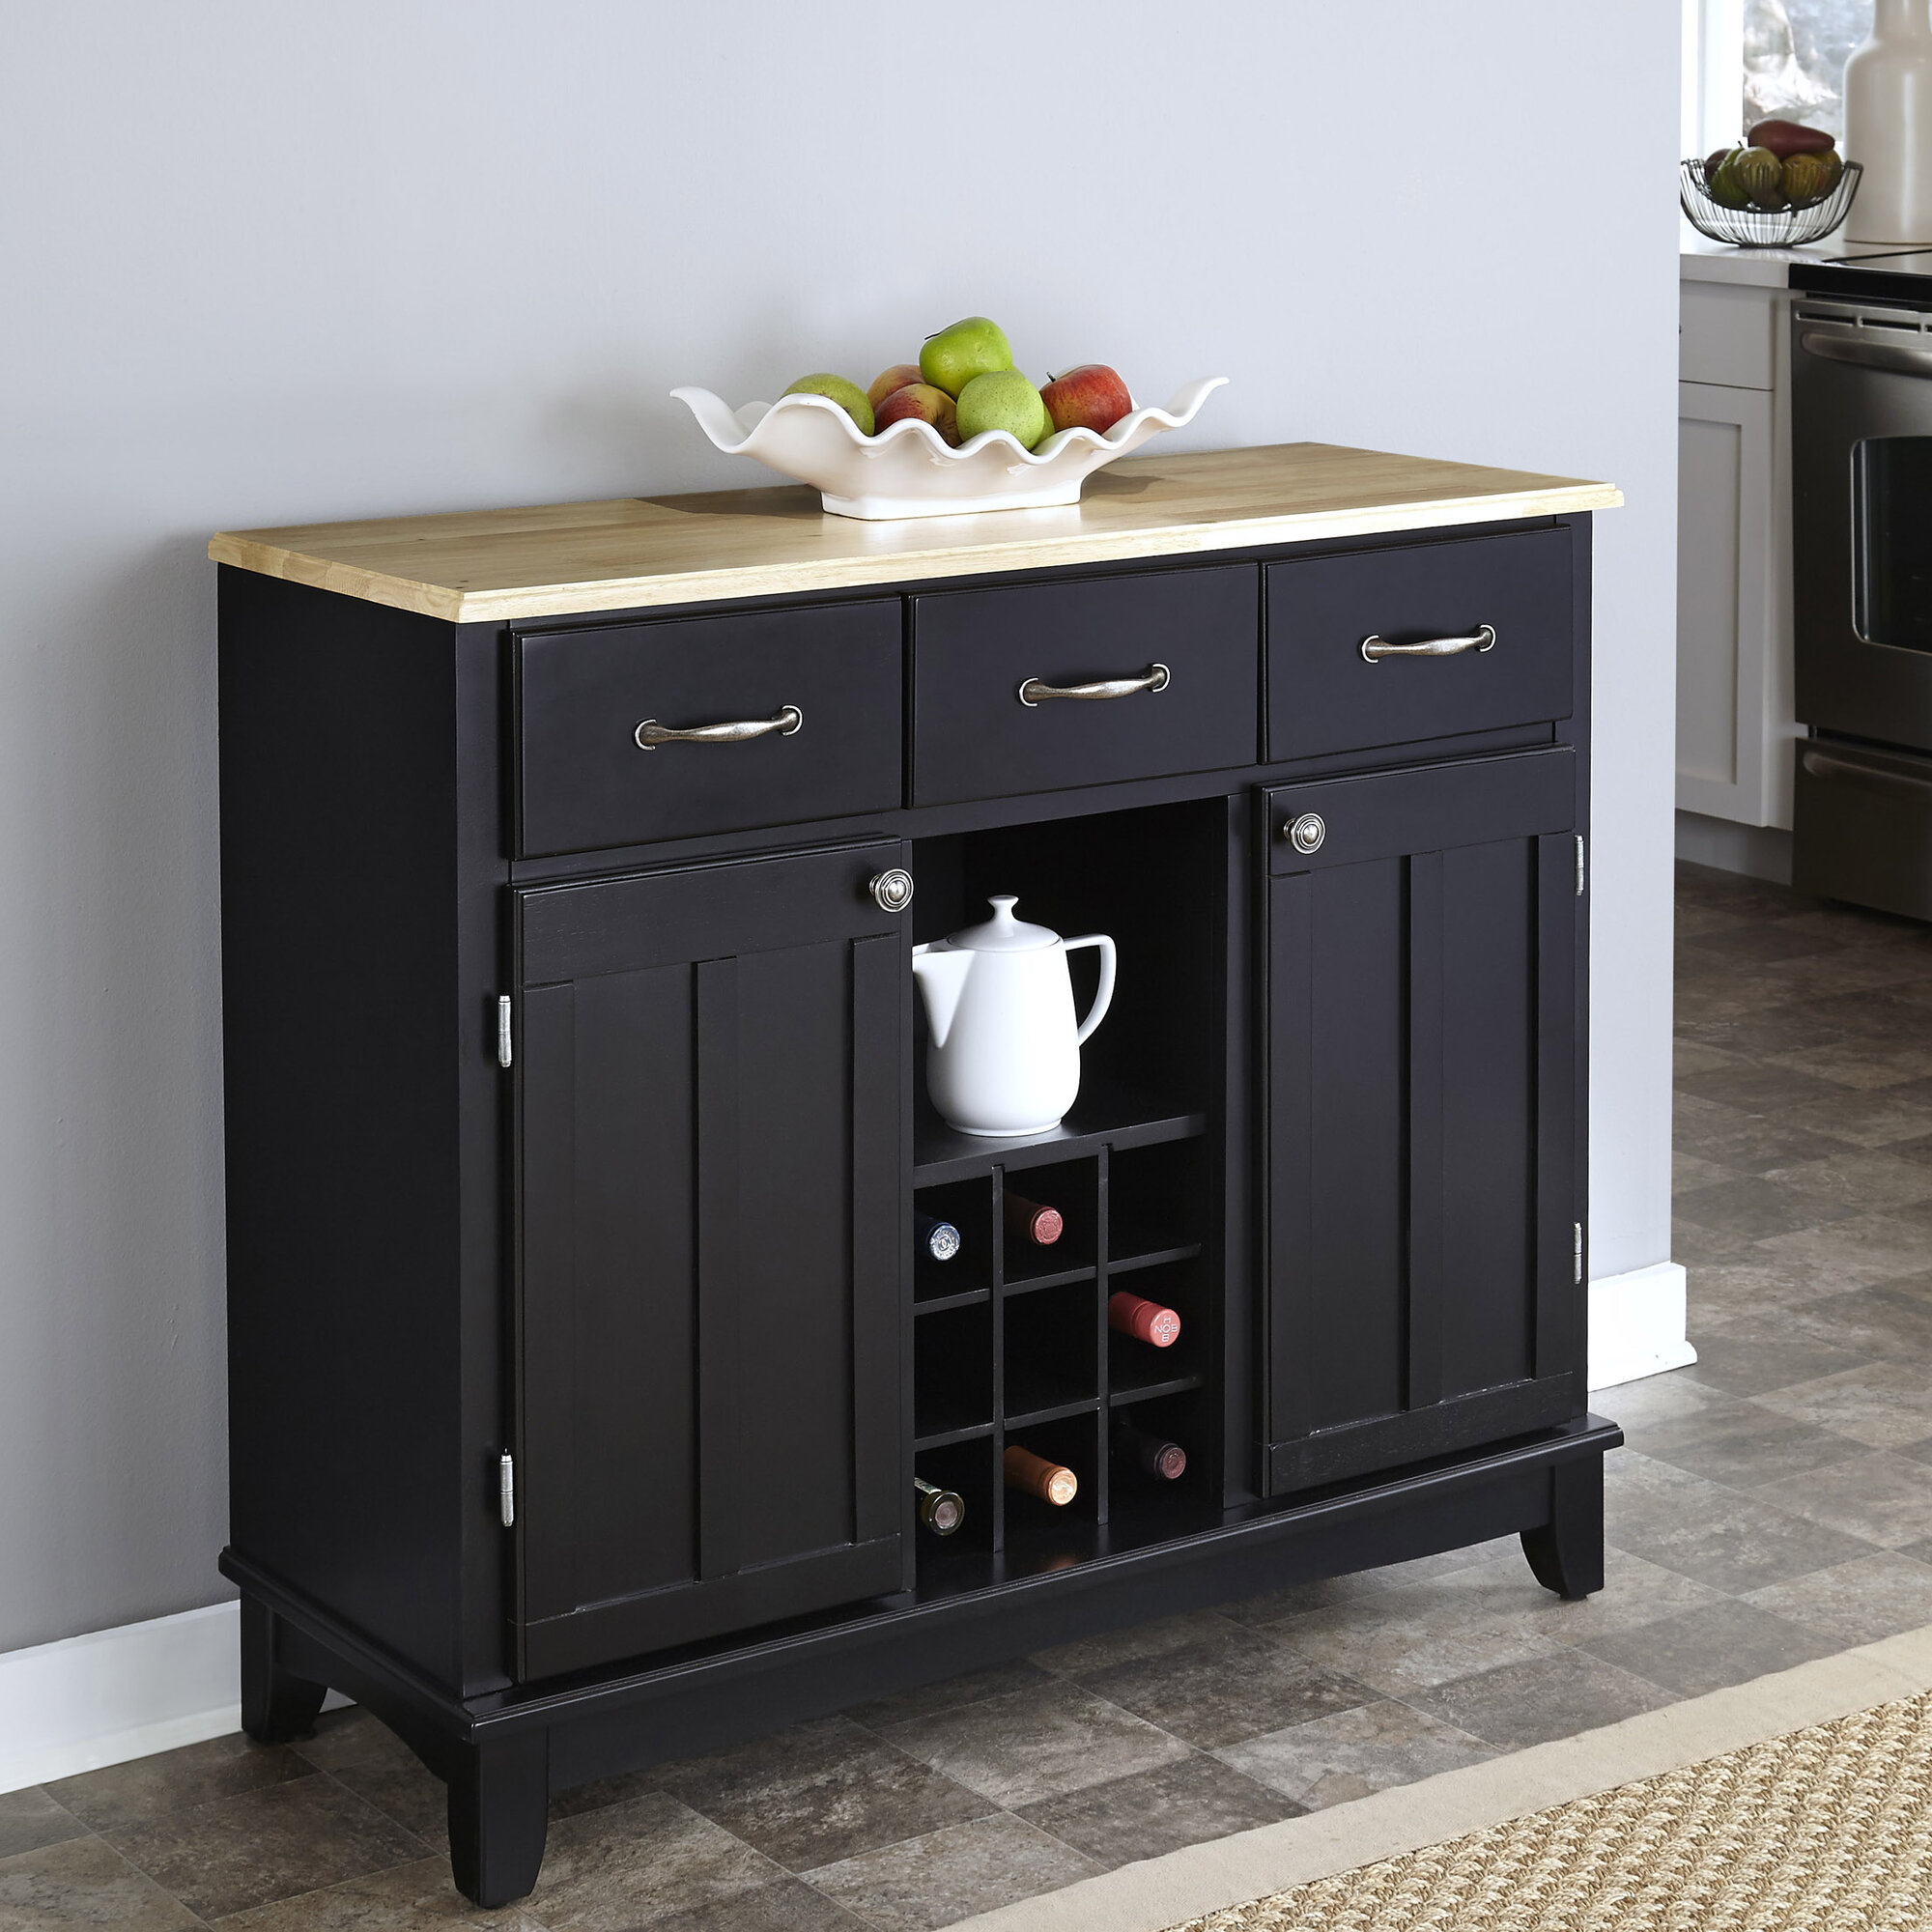 Sideboard Buffet Server Dining Room Cabinet Wine Rack Storage Furniture Black